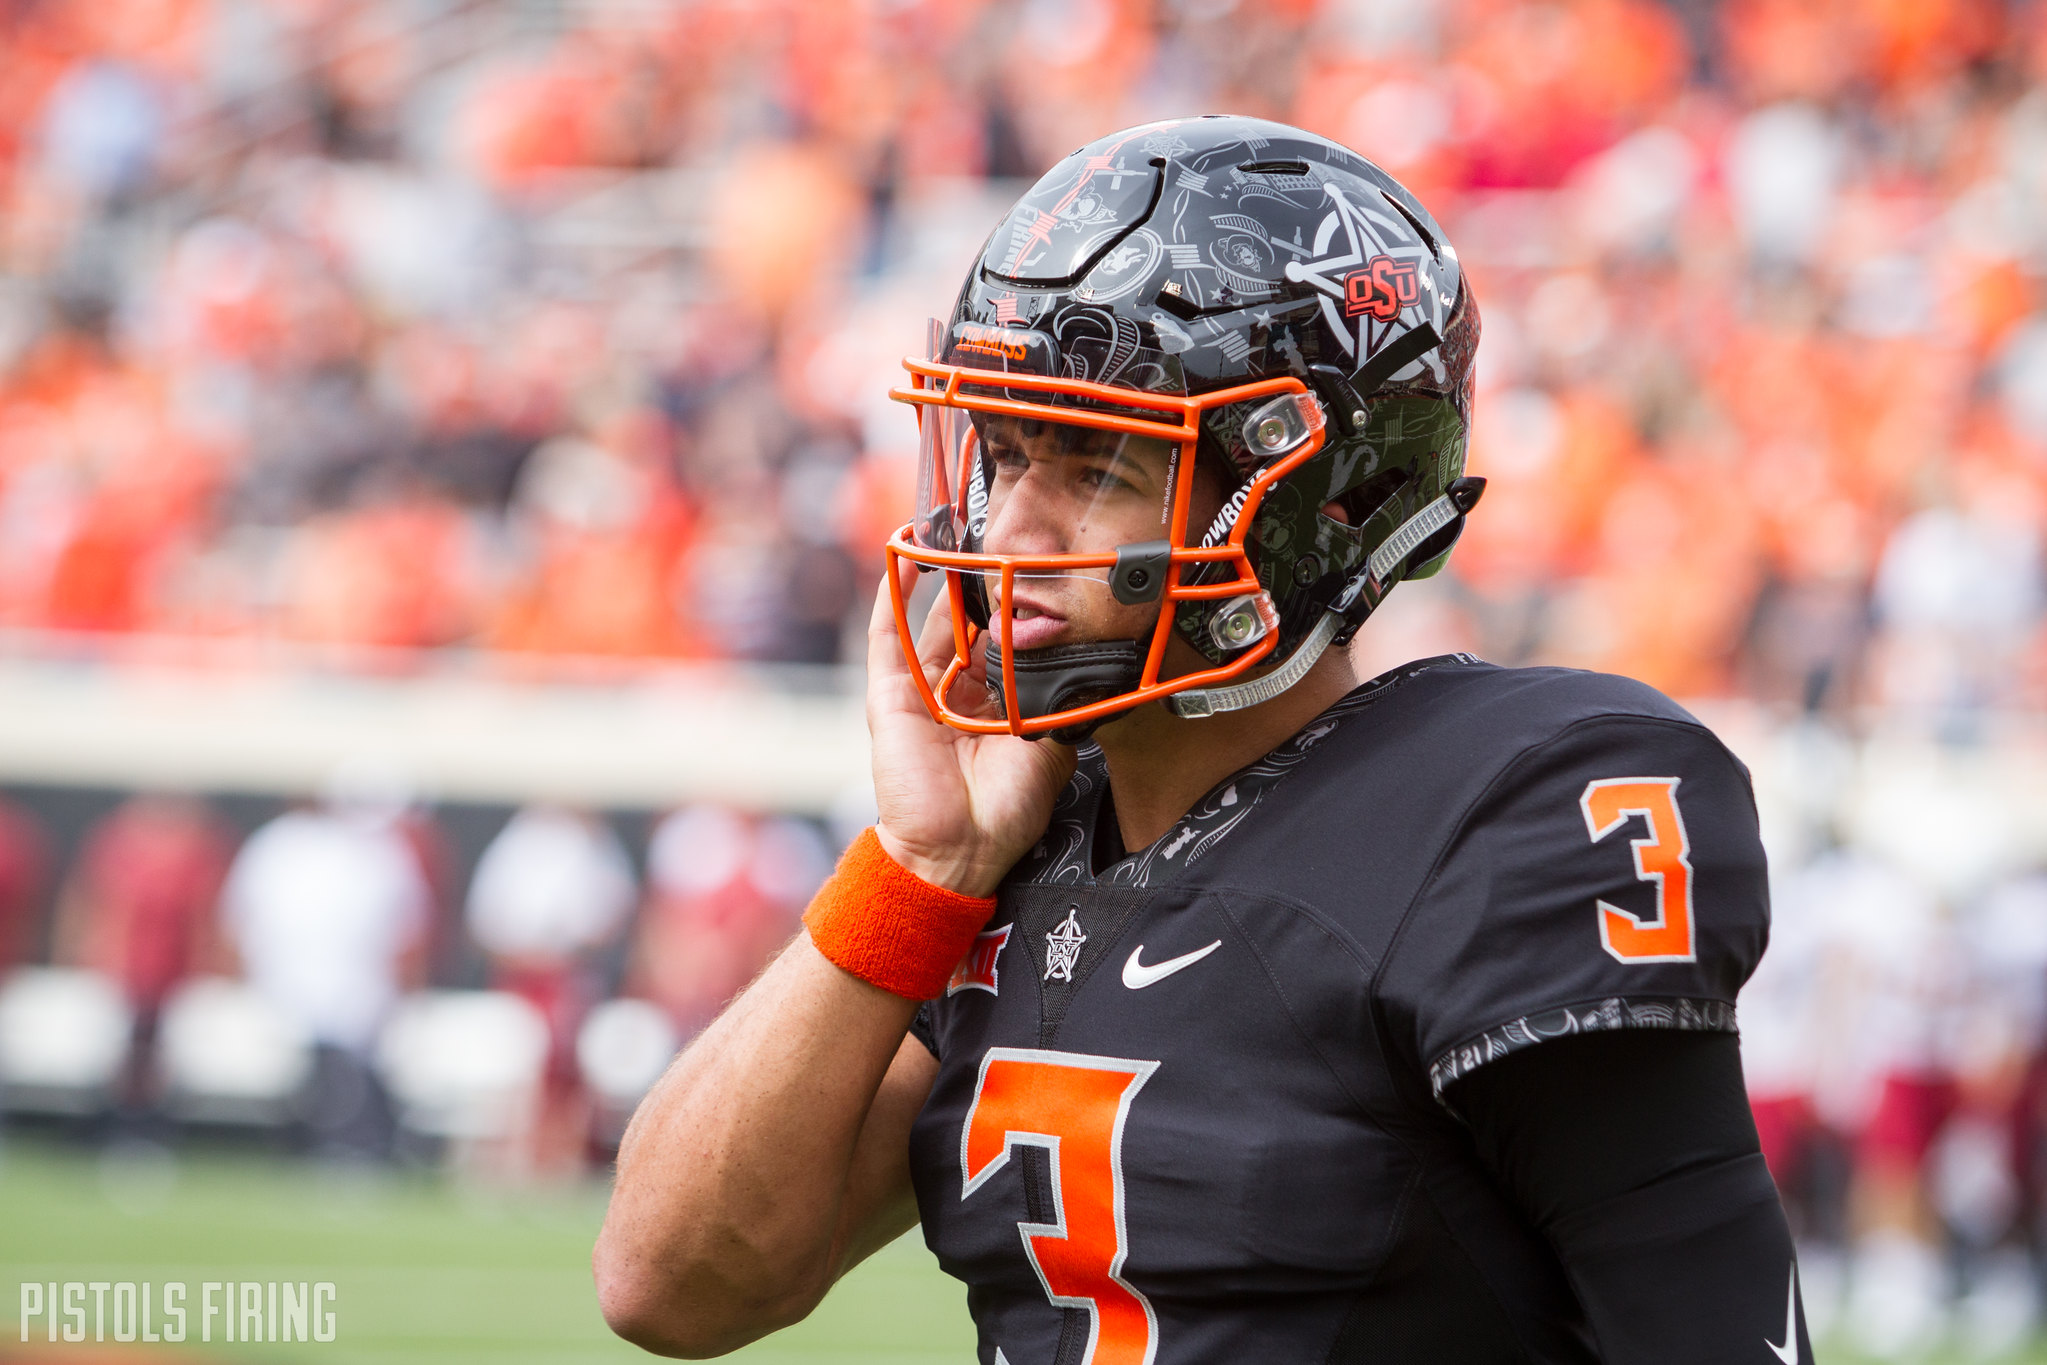 Oregon State Football Schedule 2020.Oklahoma State 2019 Football Schedule Pistols Firing